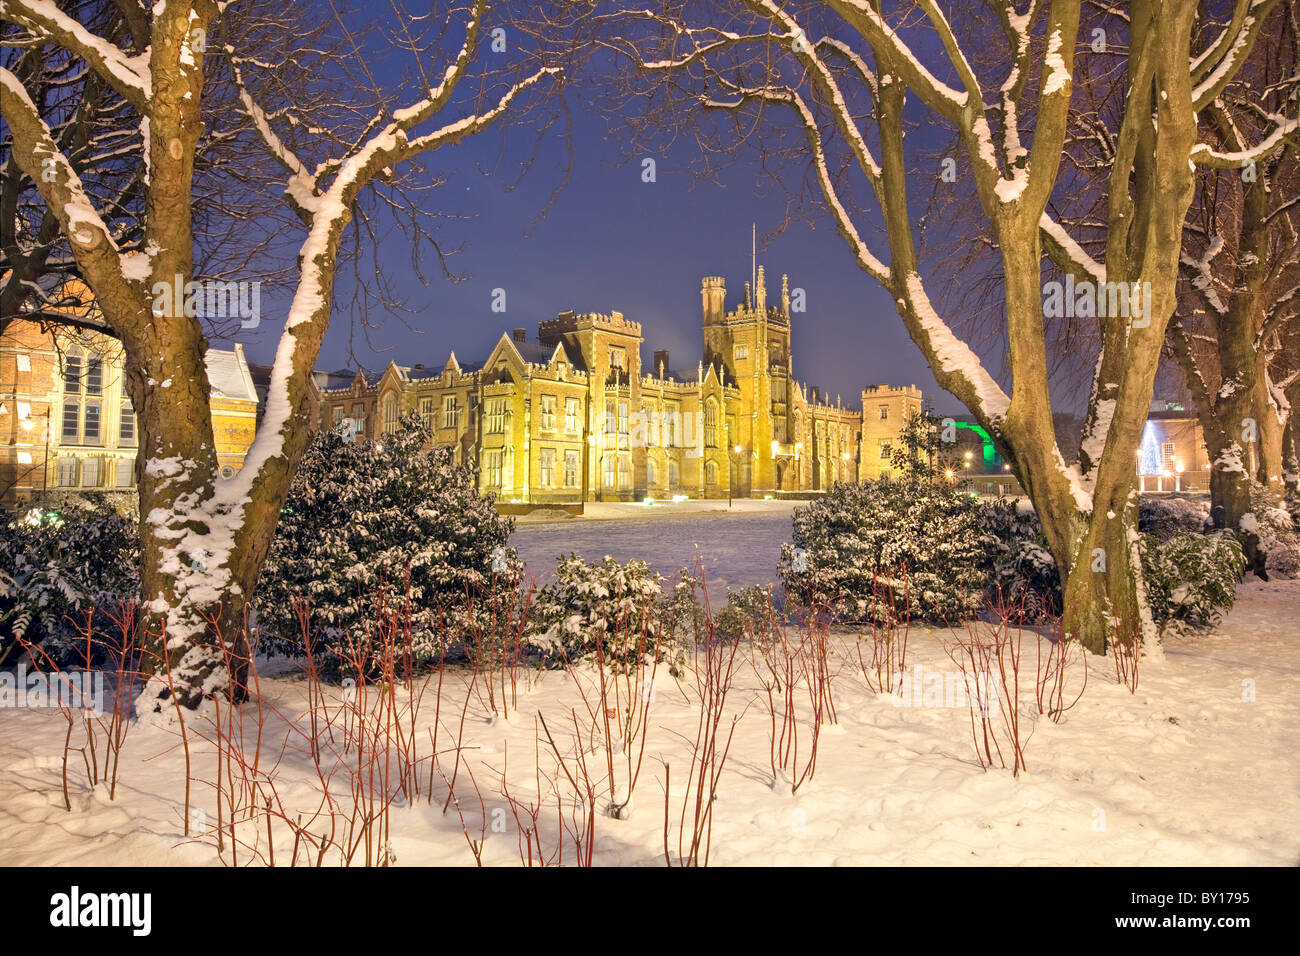 Queen's University Belfast, captured during snow fall. Co Antrim, Northern Ireland. - Stock Image